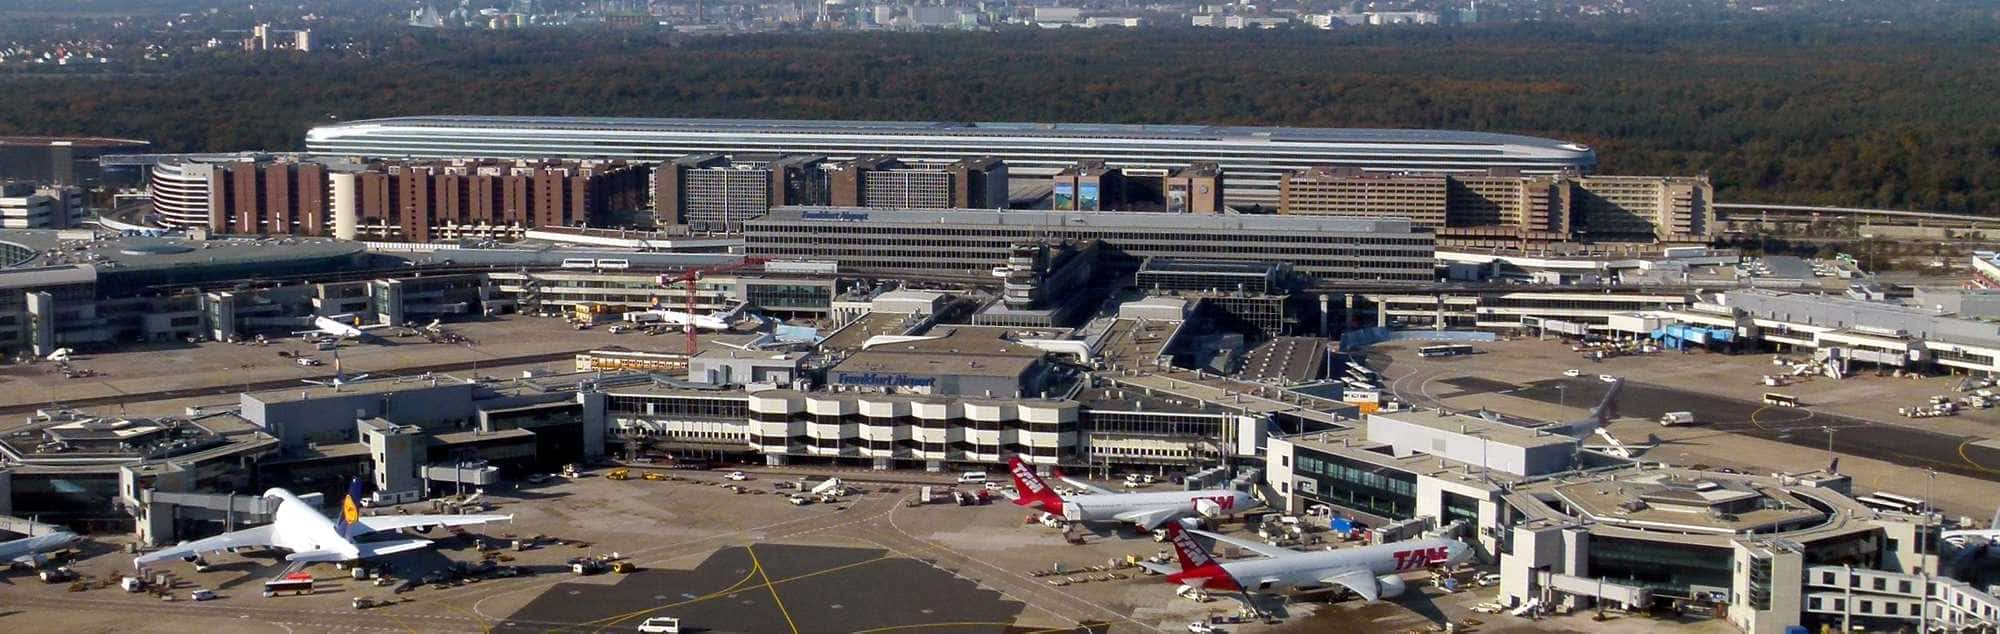 Airport frankfurt-am-main